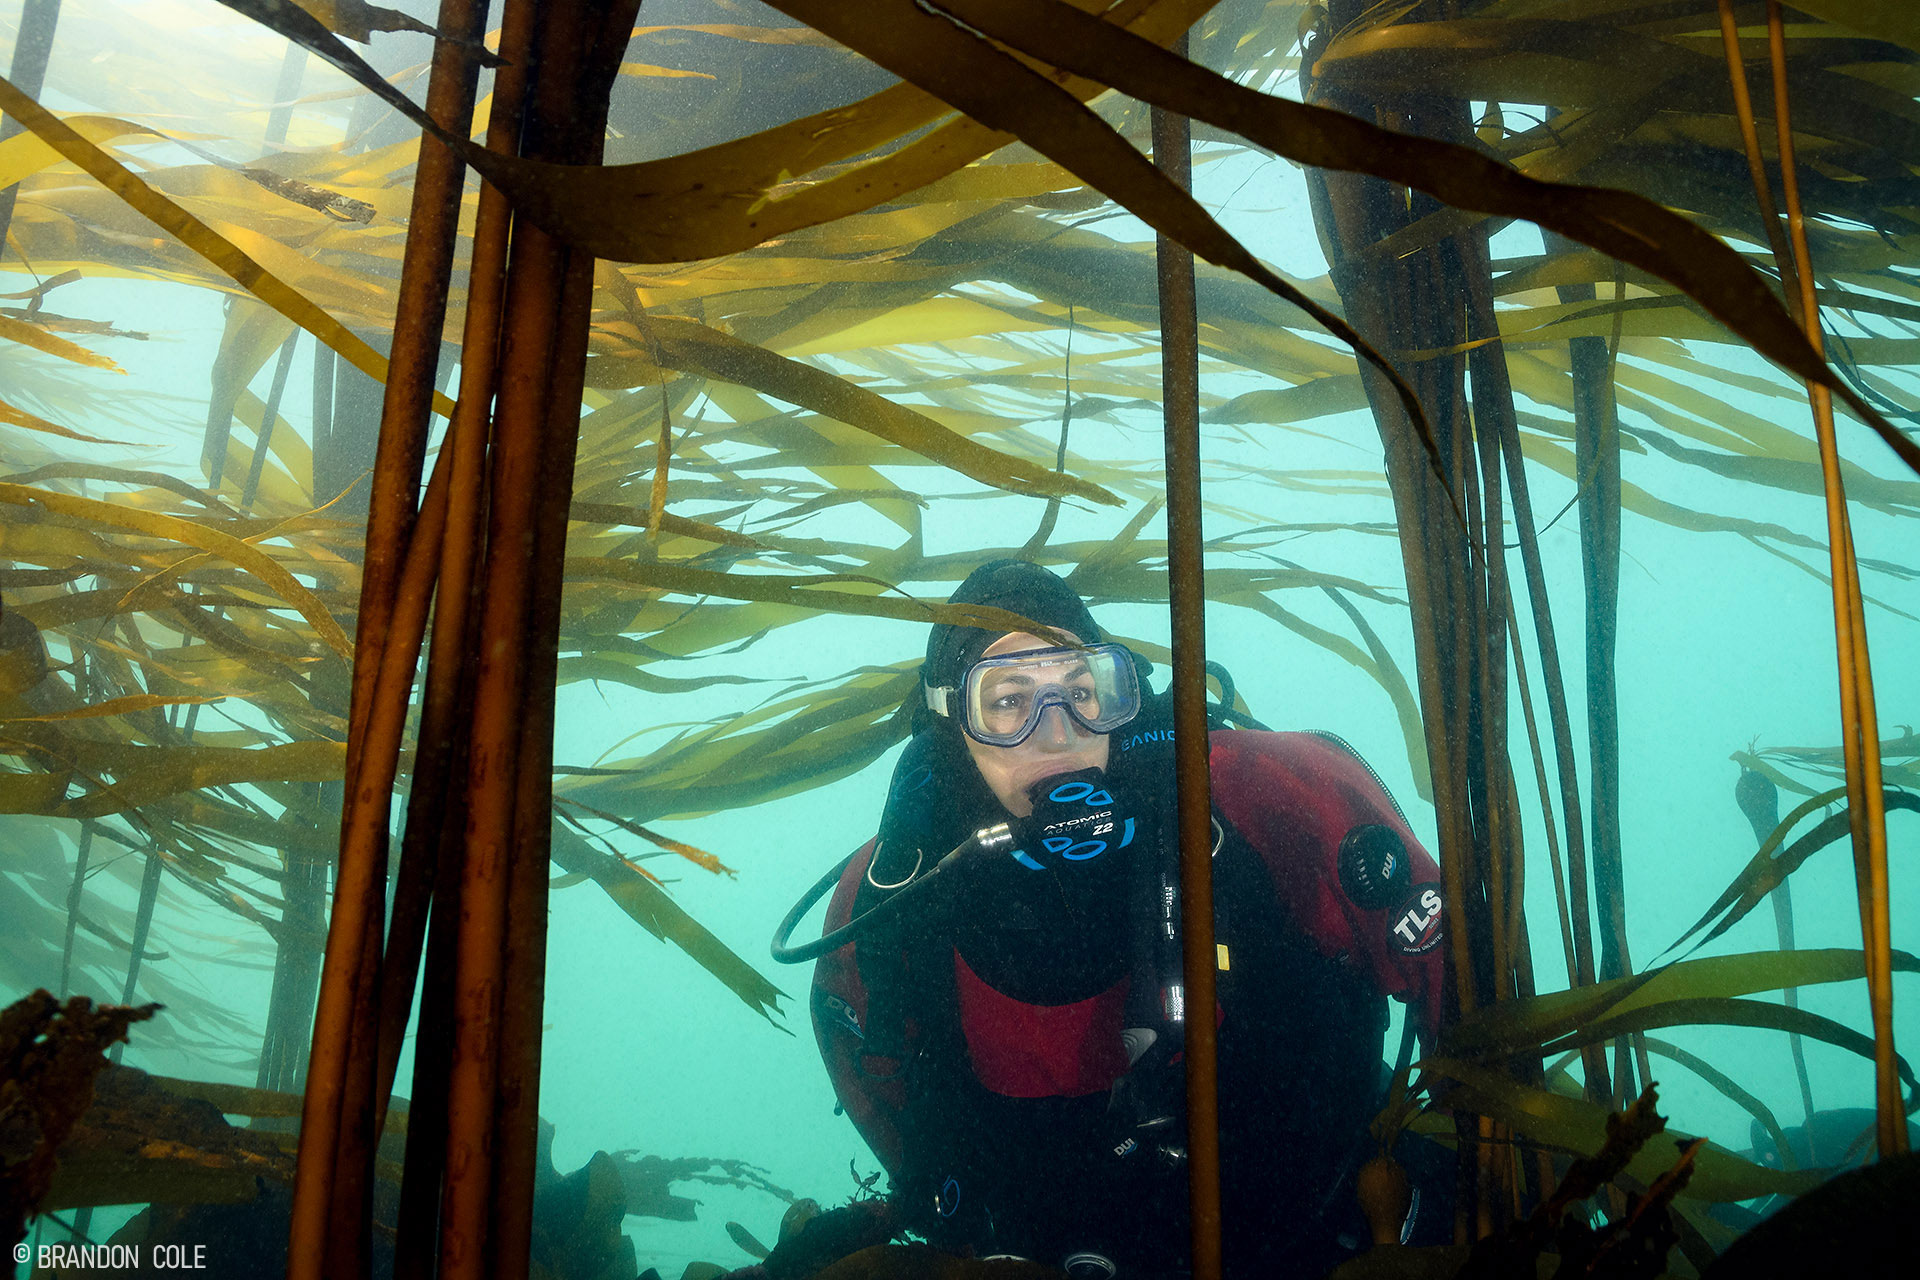 A diver swims in the kelp forest.